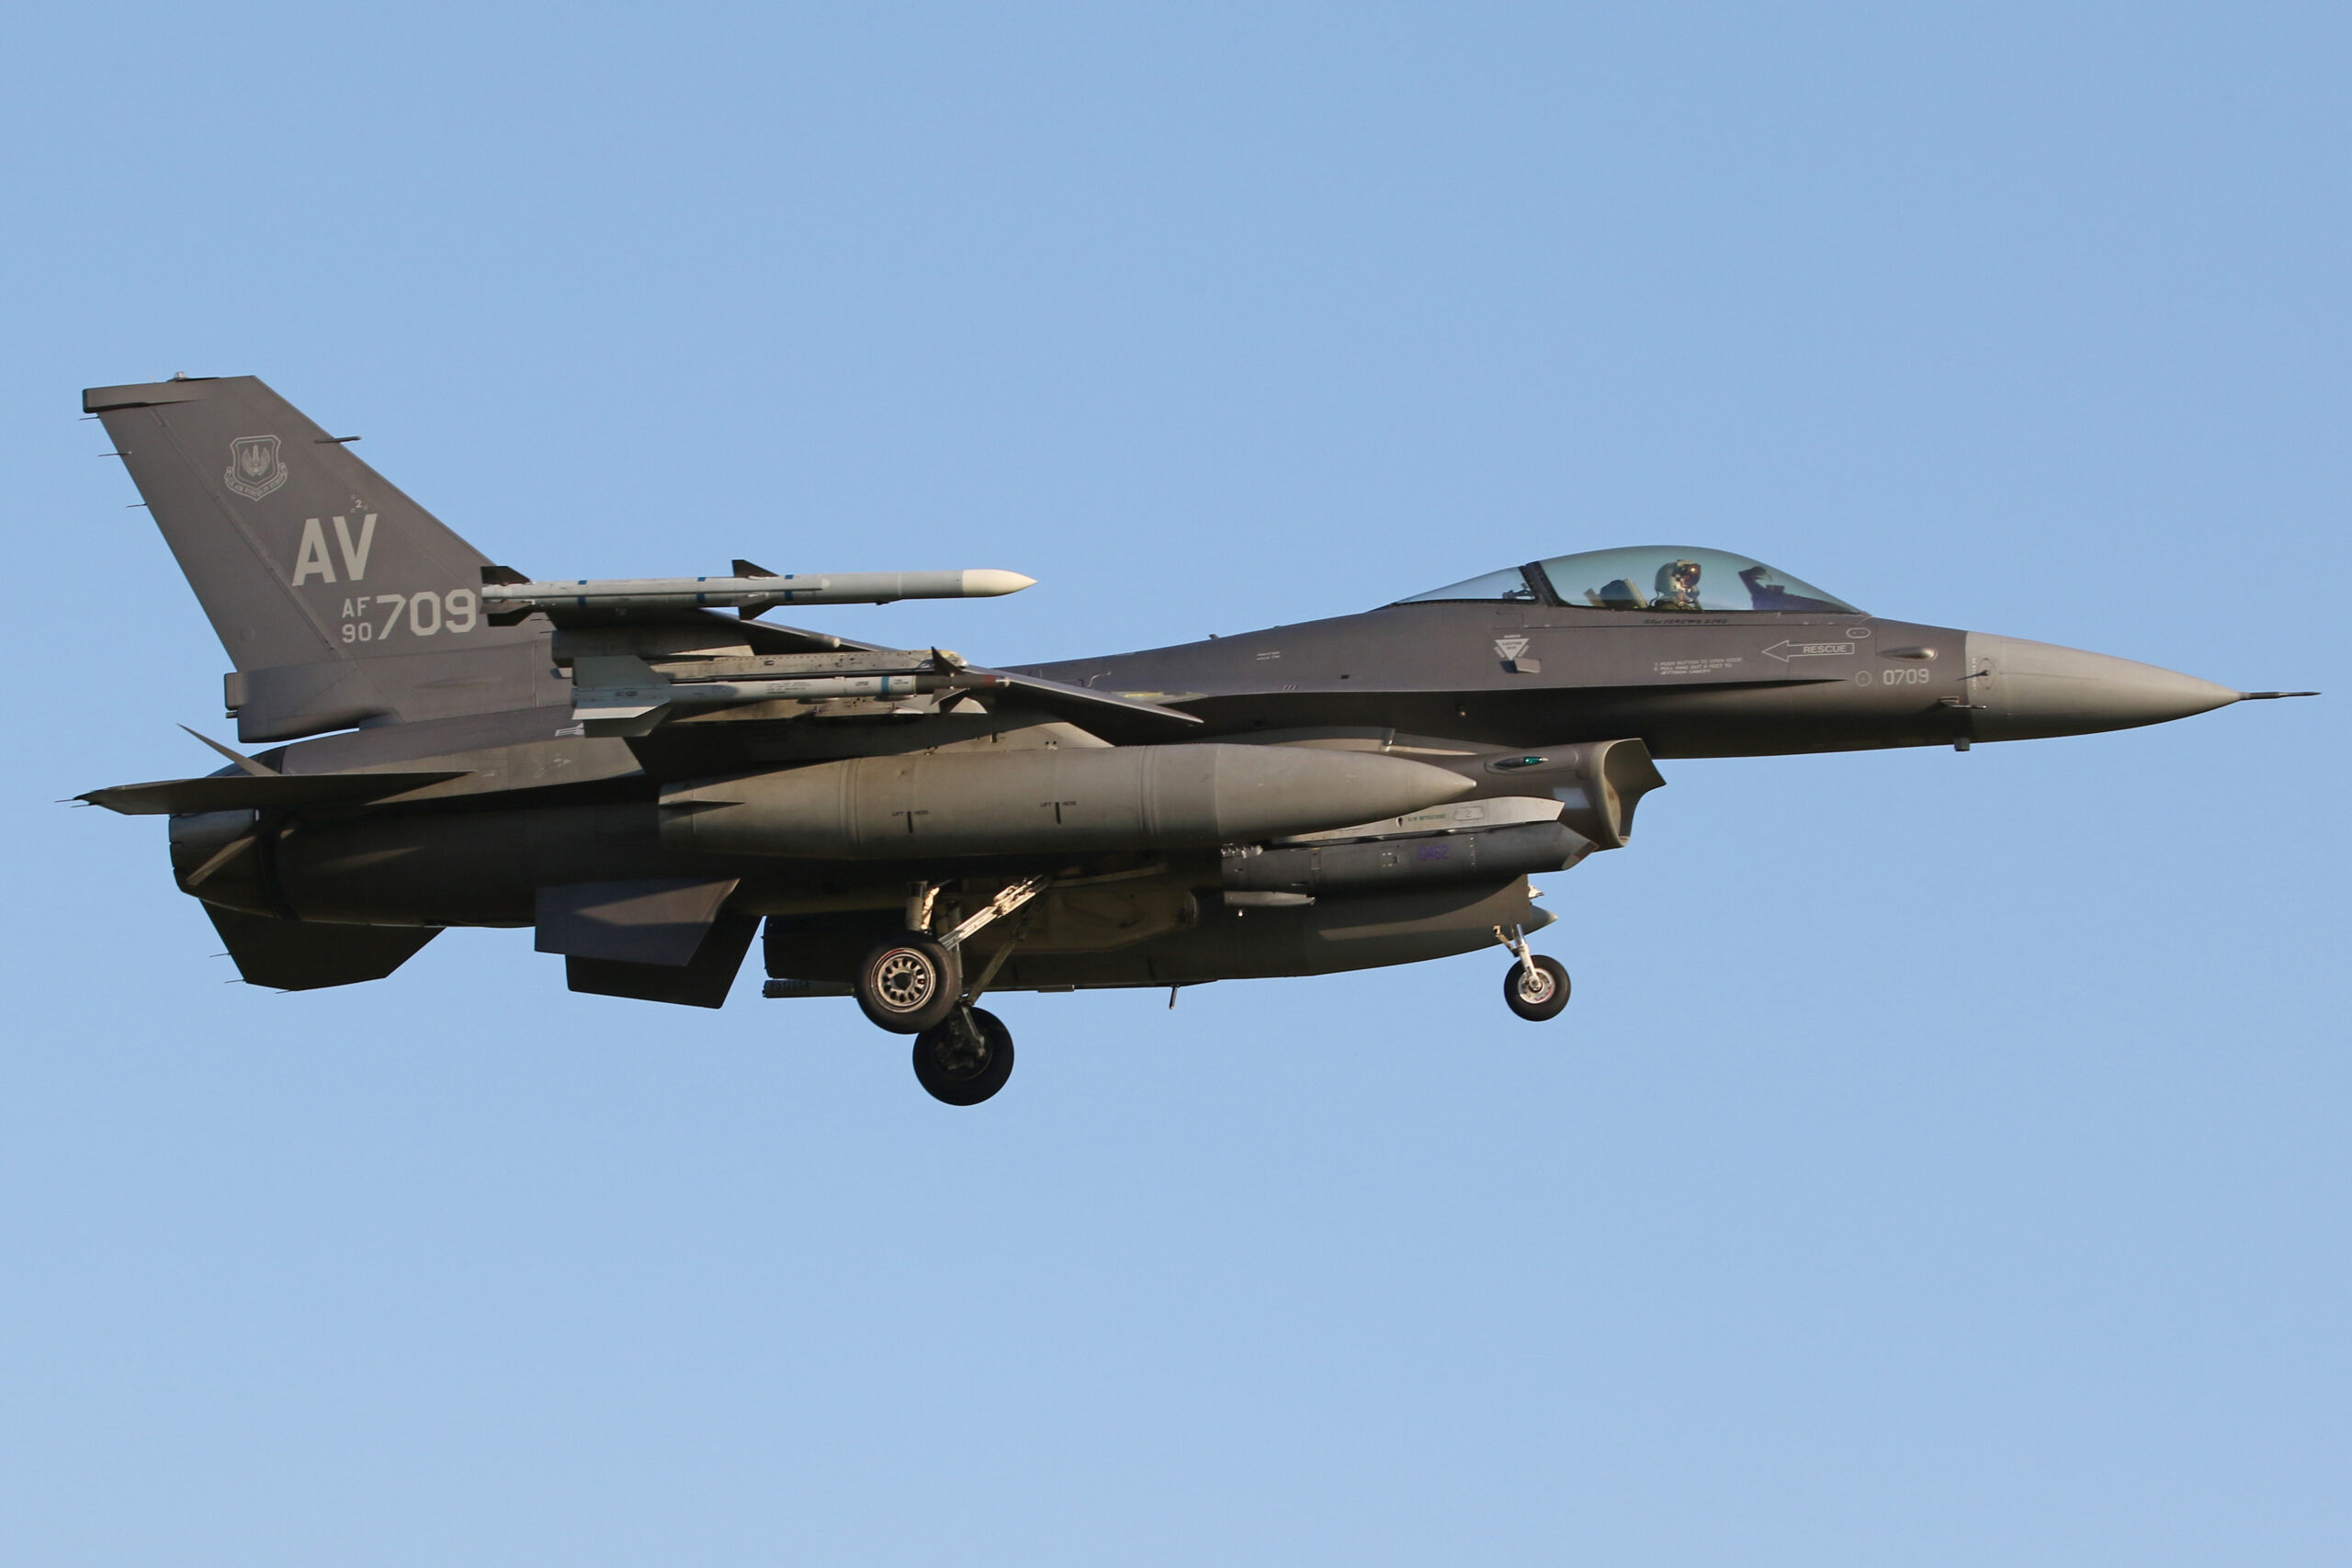 F-16s From The 31st FW At Aviano In Italy, Operate Out Of RAF Lakenheath For A Four Week Deployment